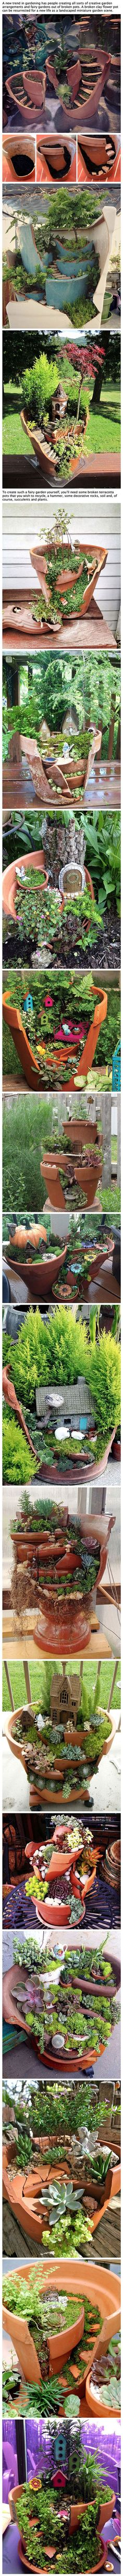 Broken Pots Turned Into Beautiful Fairy Gardens.: